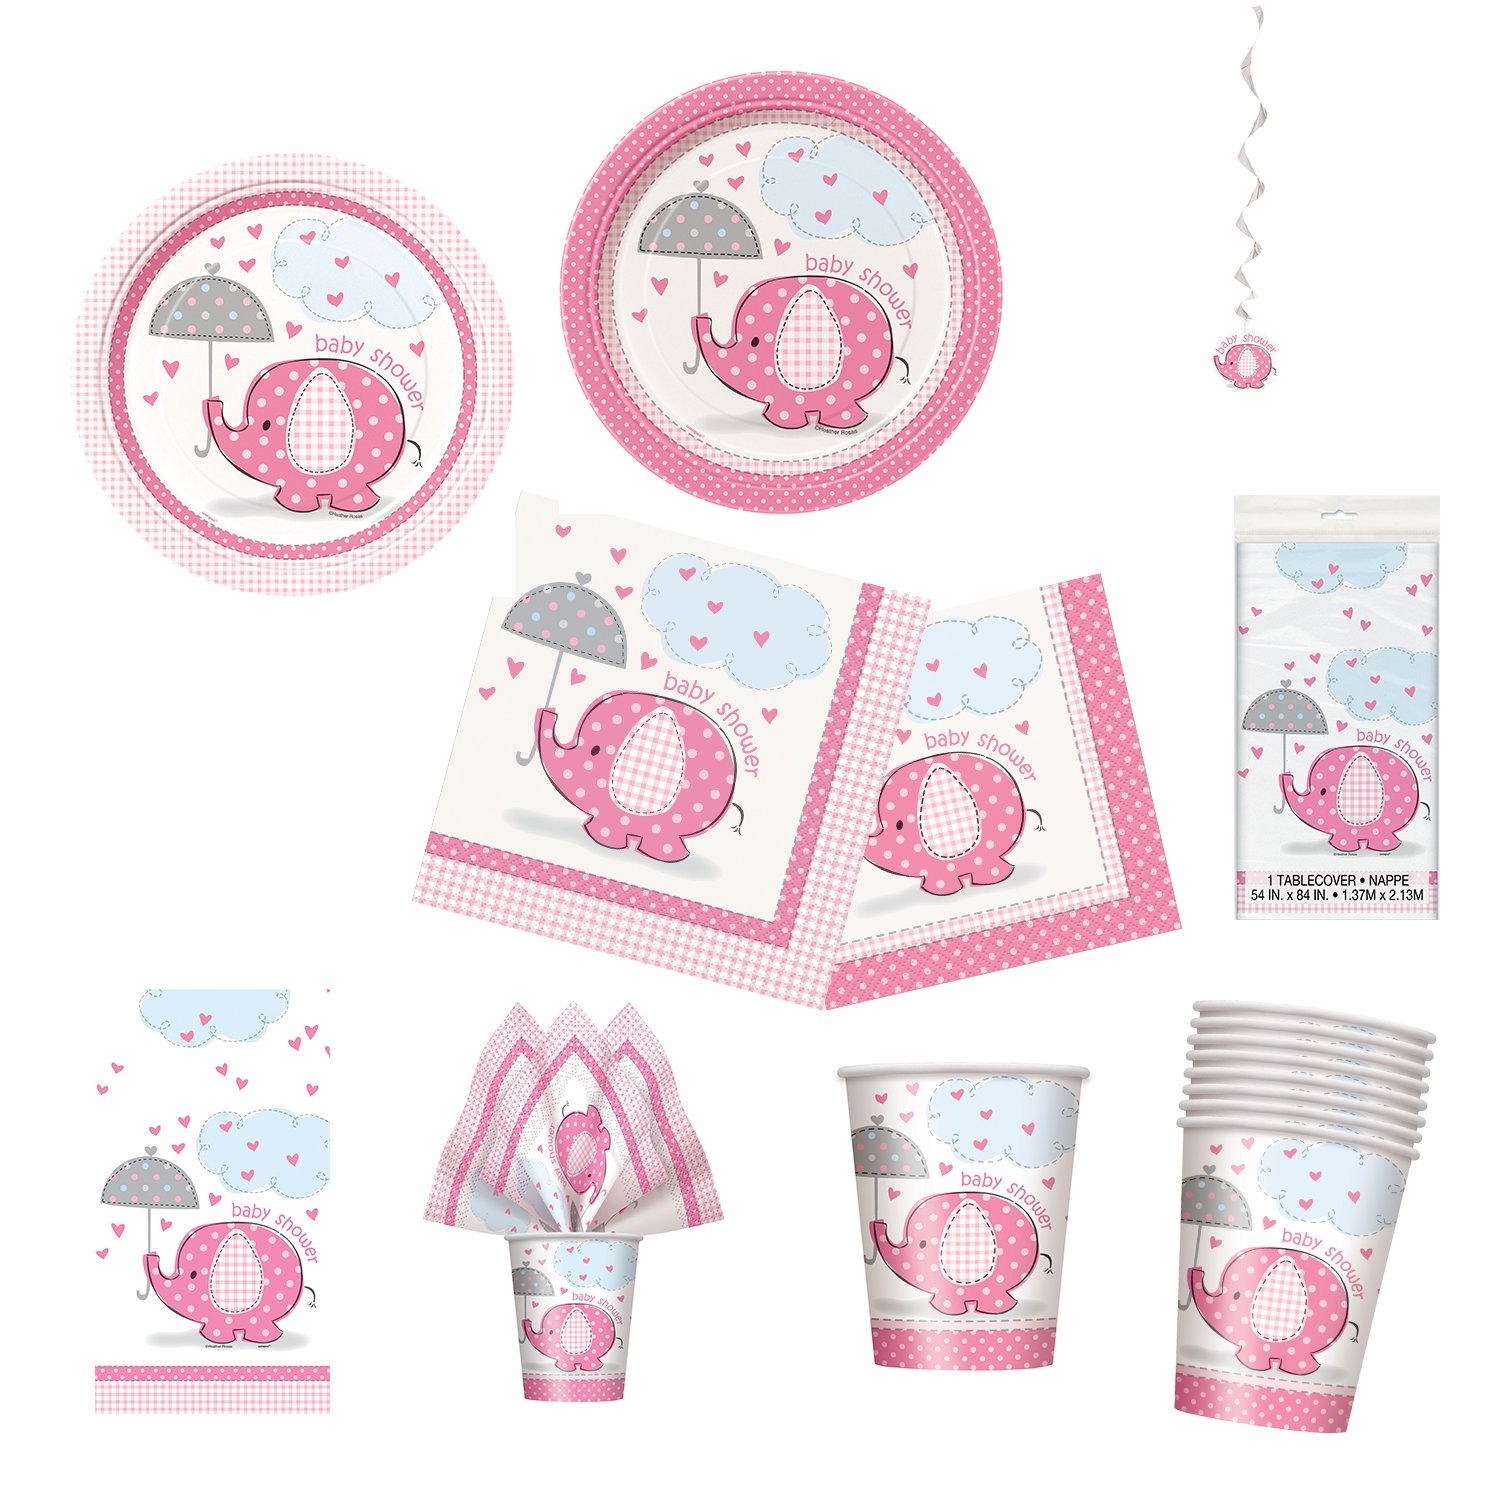 Unique Umbrellaphants Pink Party Bundle | Luncheon & Beverage Napkins, Dinner & Dessert Plates, Table Cover, Cups, Decor | Great for Baby Girl Showers